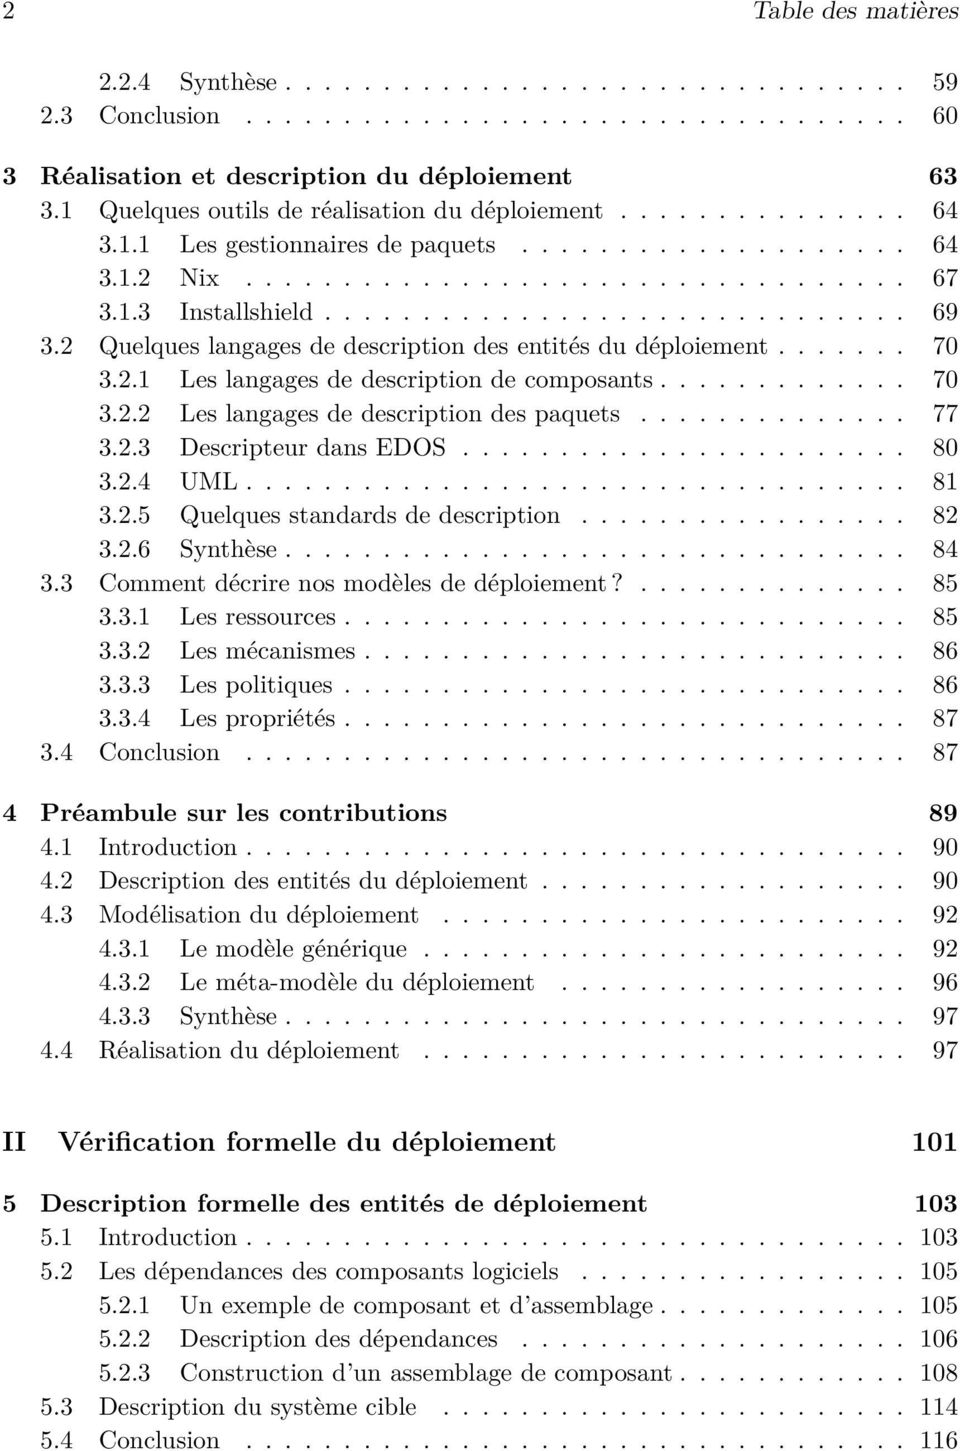 2 Quelques langages de description des entités du déploiement....... 70 3.2.1 Les langages de description de composants............. 70 3.2.2 Les langages de description des paquets.............. 77 3.